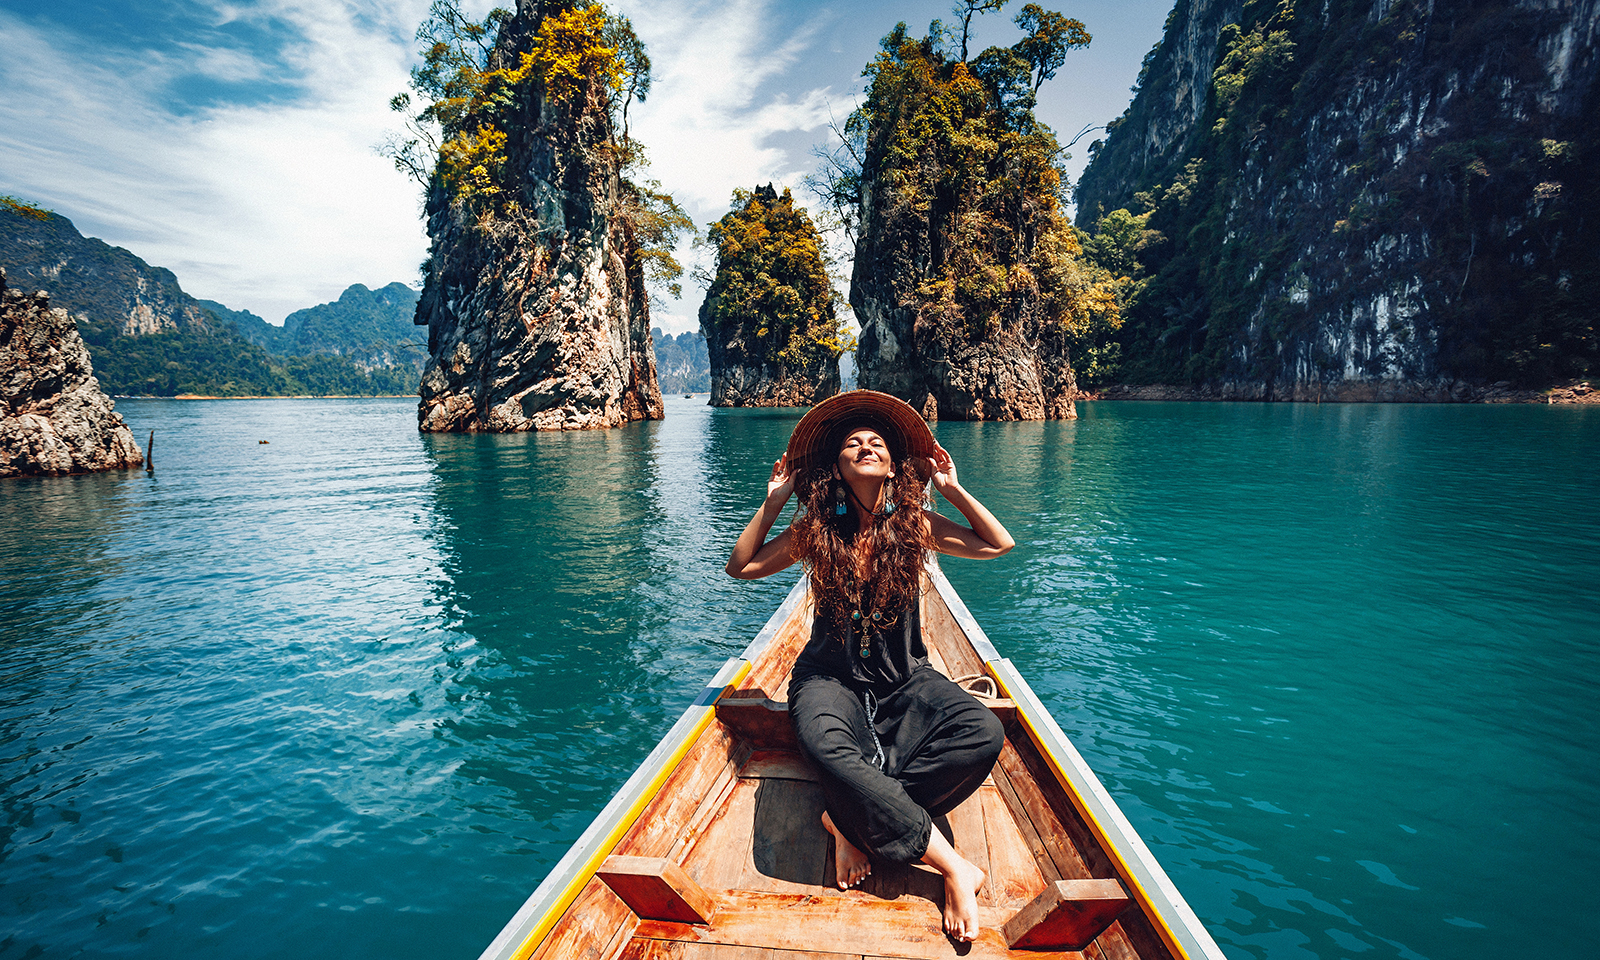 girl-in-boat-in-southeast-asia-travel-traveling-wearing-sunhat